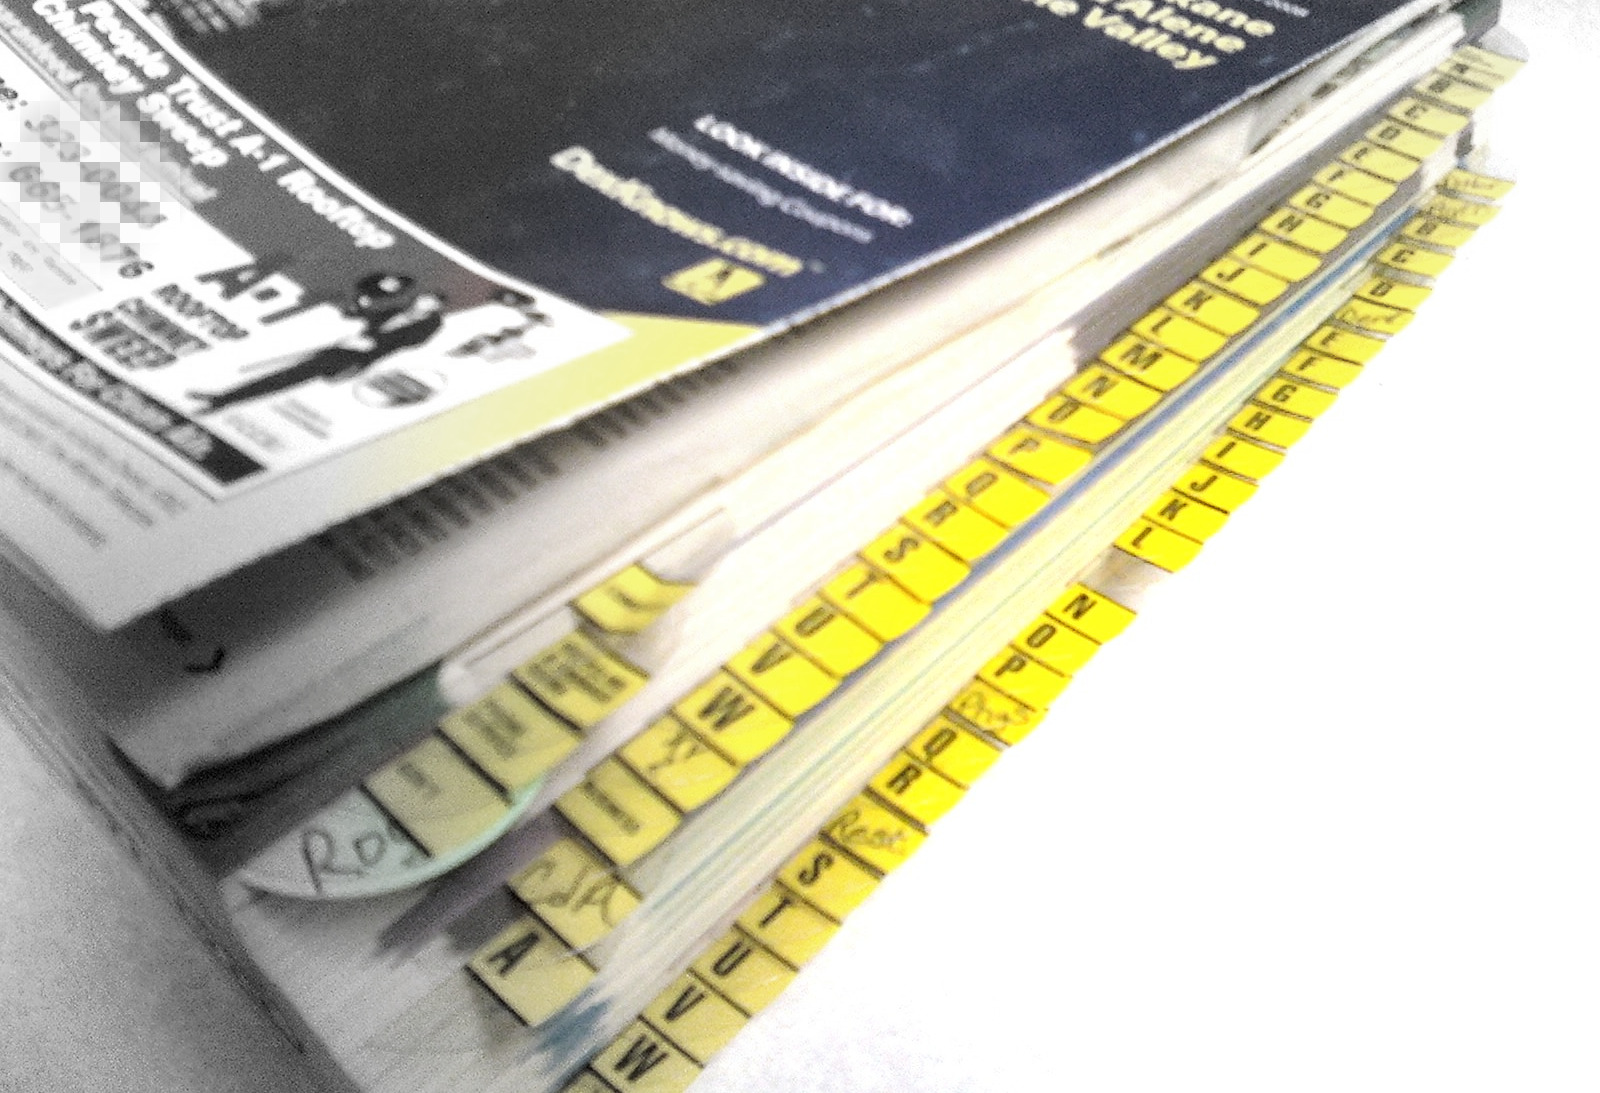 Index Tabs to help organize your phone book